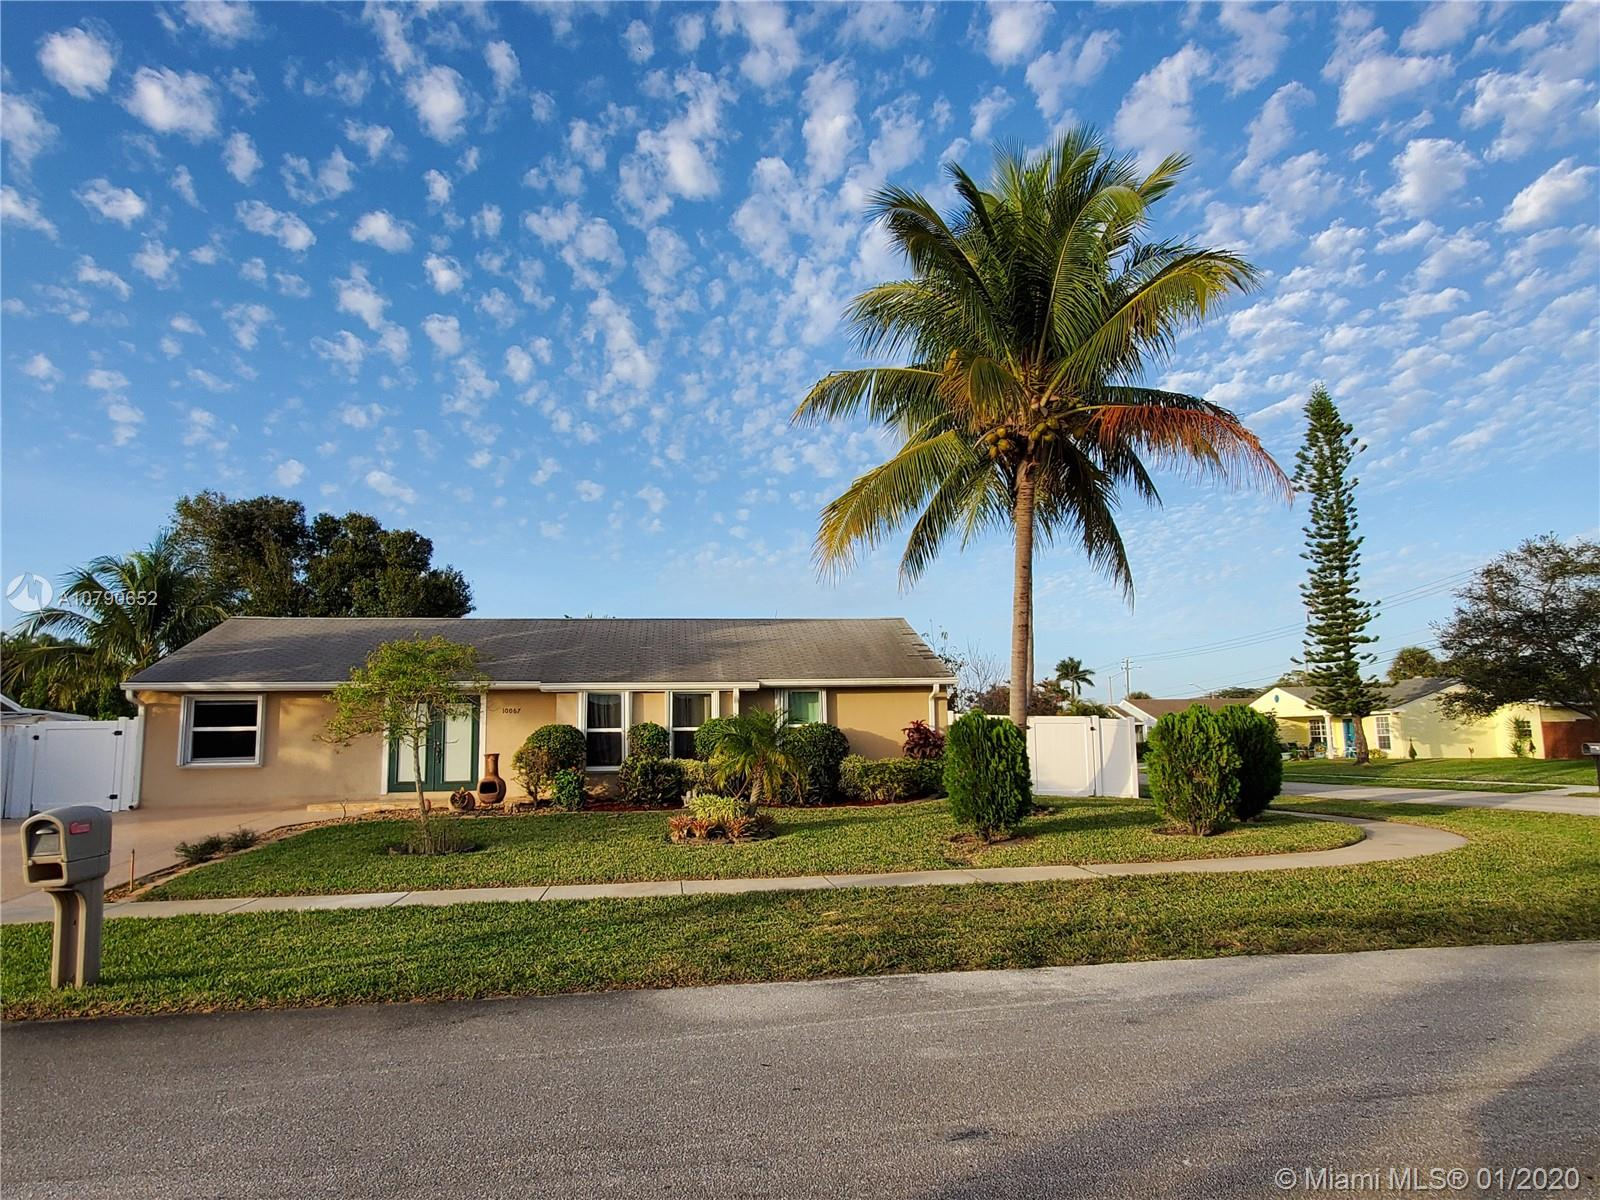 10067 Yeoman Ln, Royal Palm Beach, FL 33411